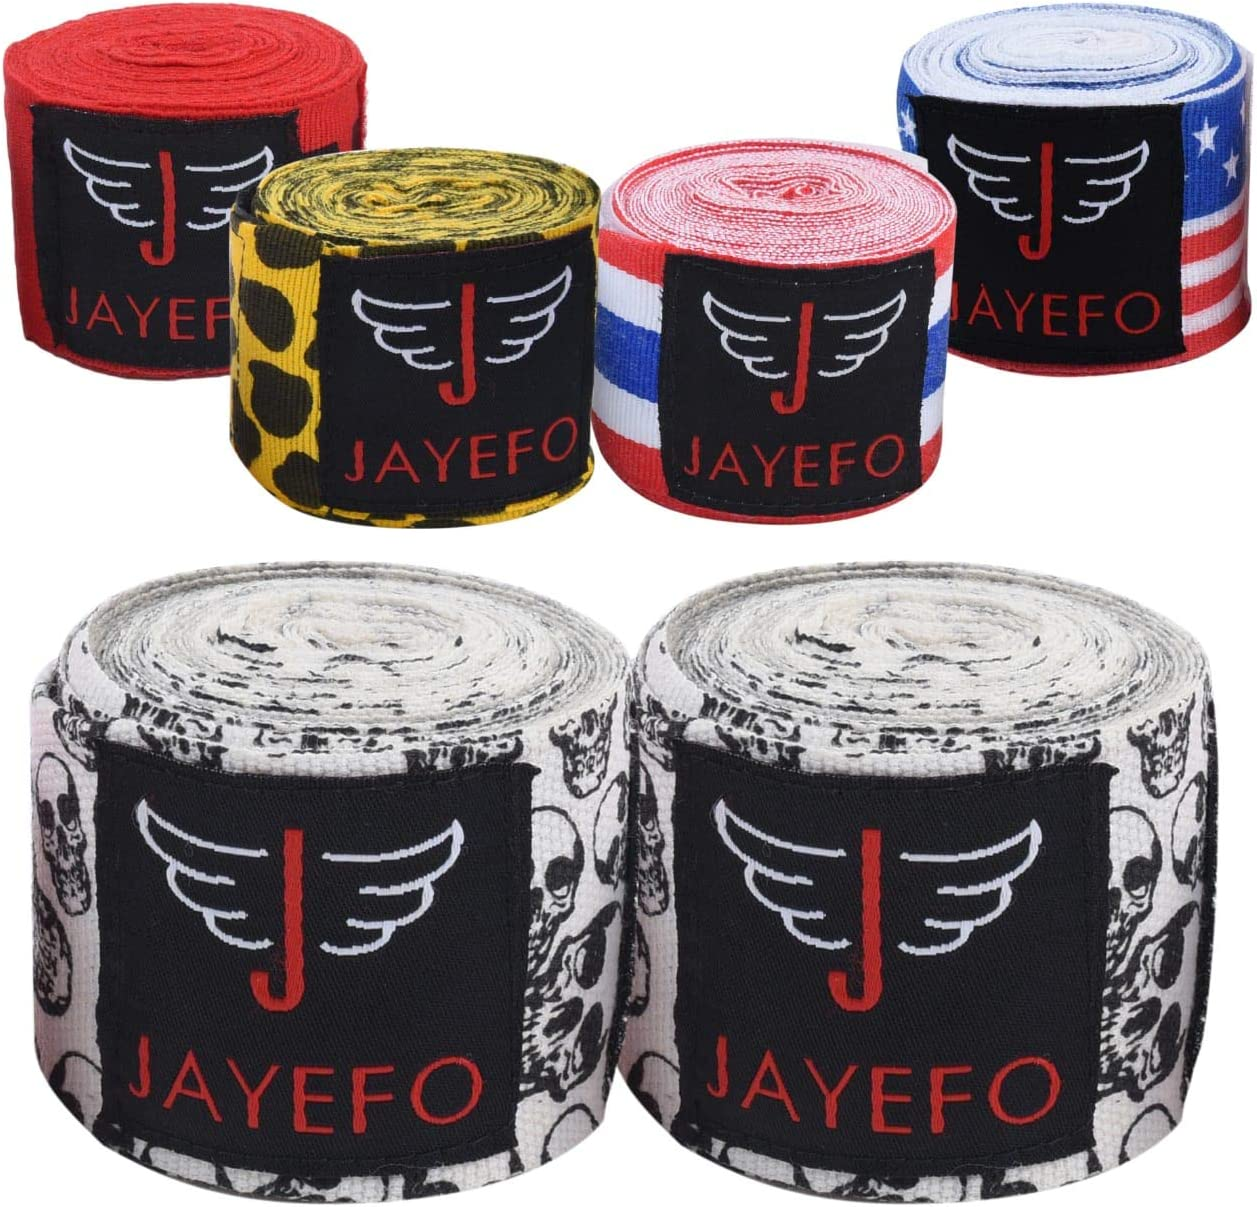 Jayefo Long Beach Mall Sports Hand Wraps OFFer 180 Inner Martial Gloves Inches Boxing